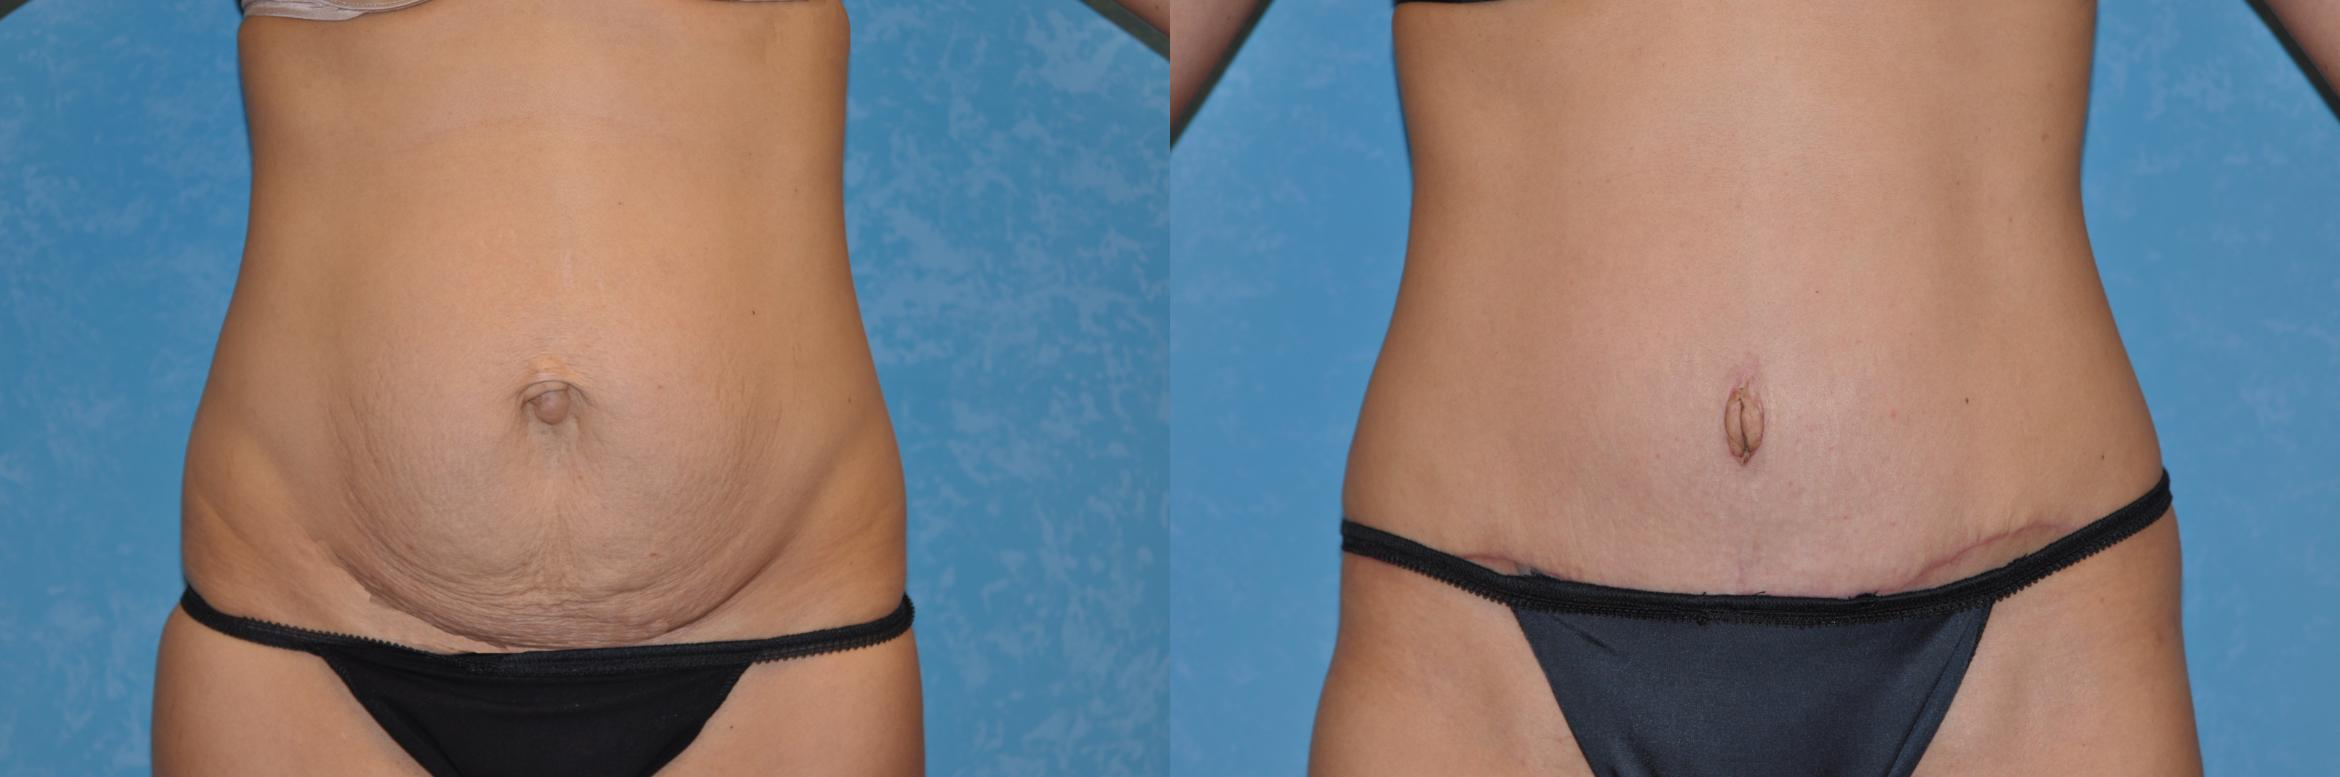 Abdominoplasty Before & After Photo | Toledo, Ohio | Dr. Craig Colville